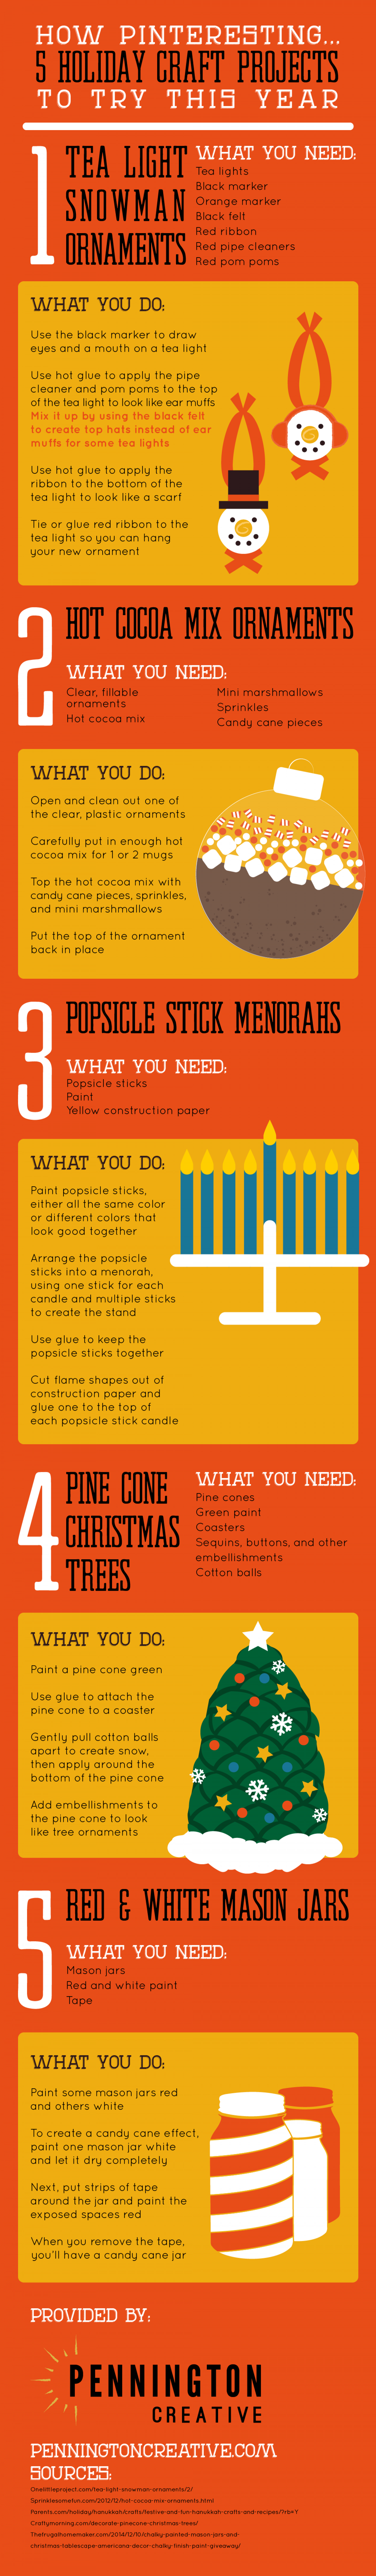 How Pinteresting… 5 Holiday Craft Projects to Try This Year Infographic